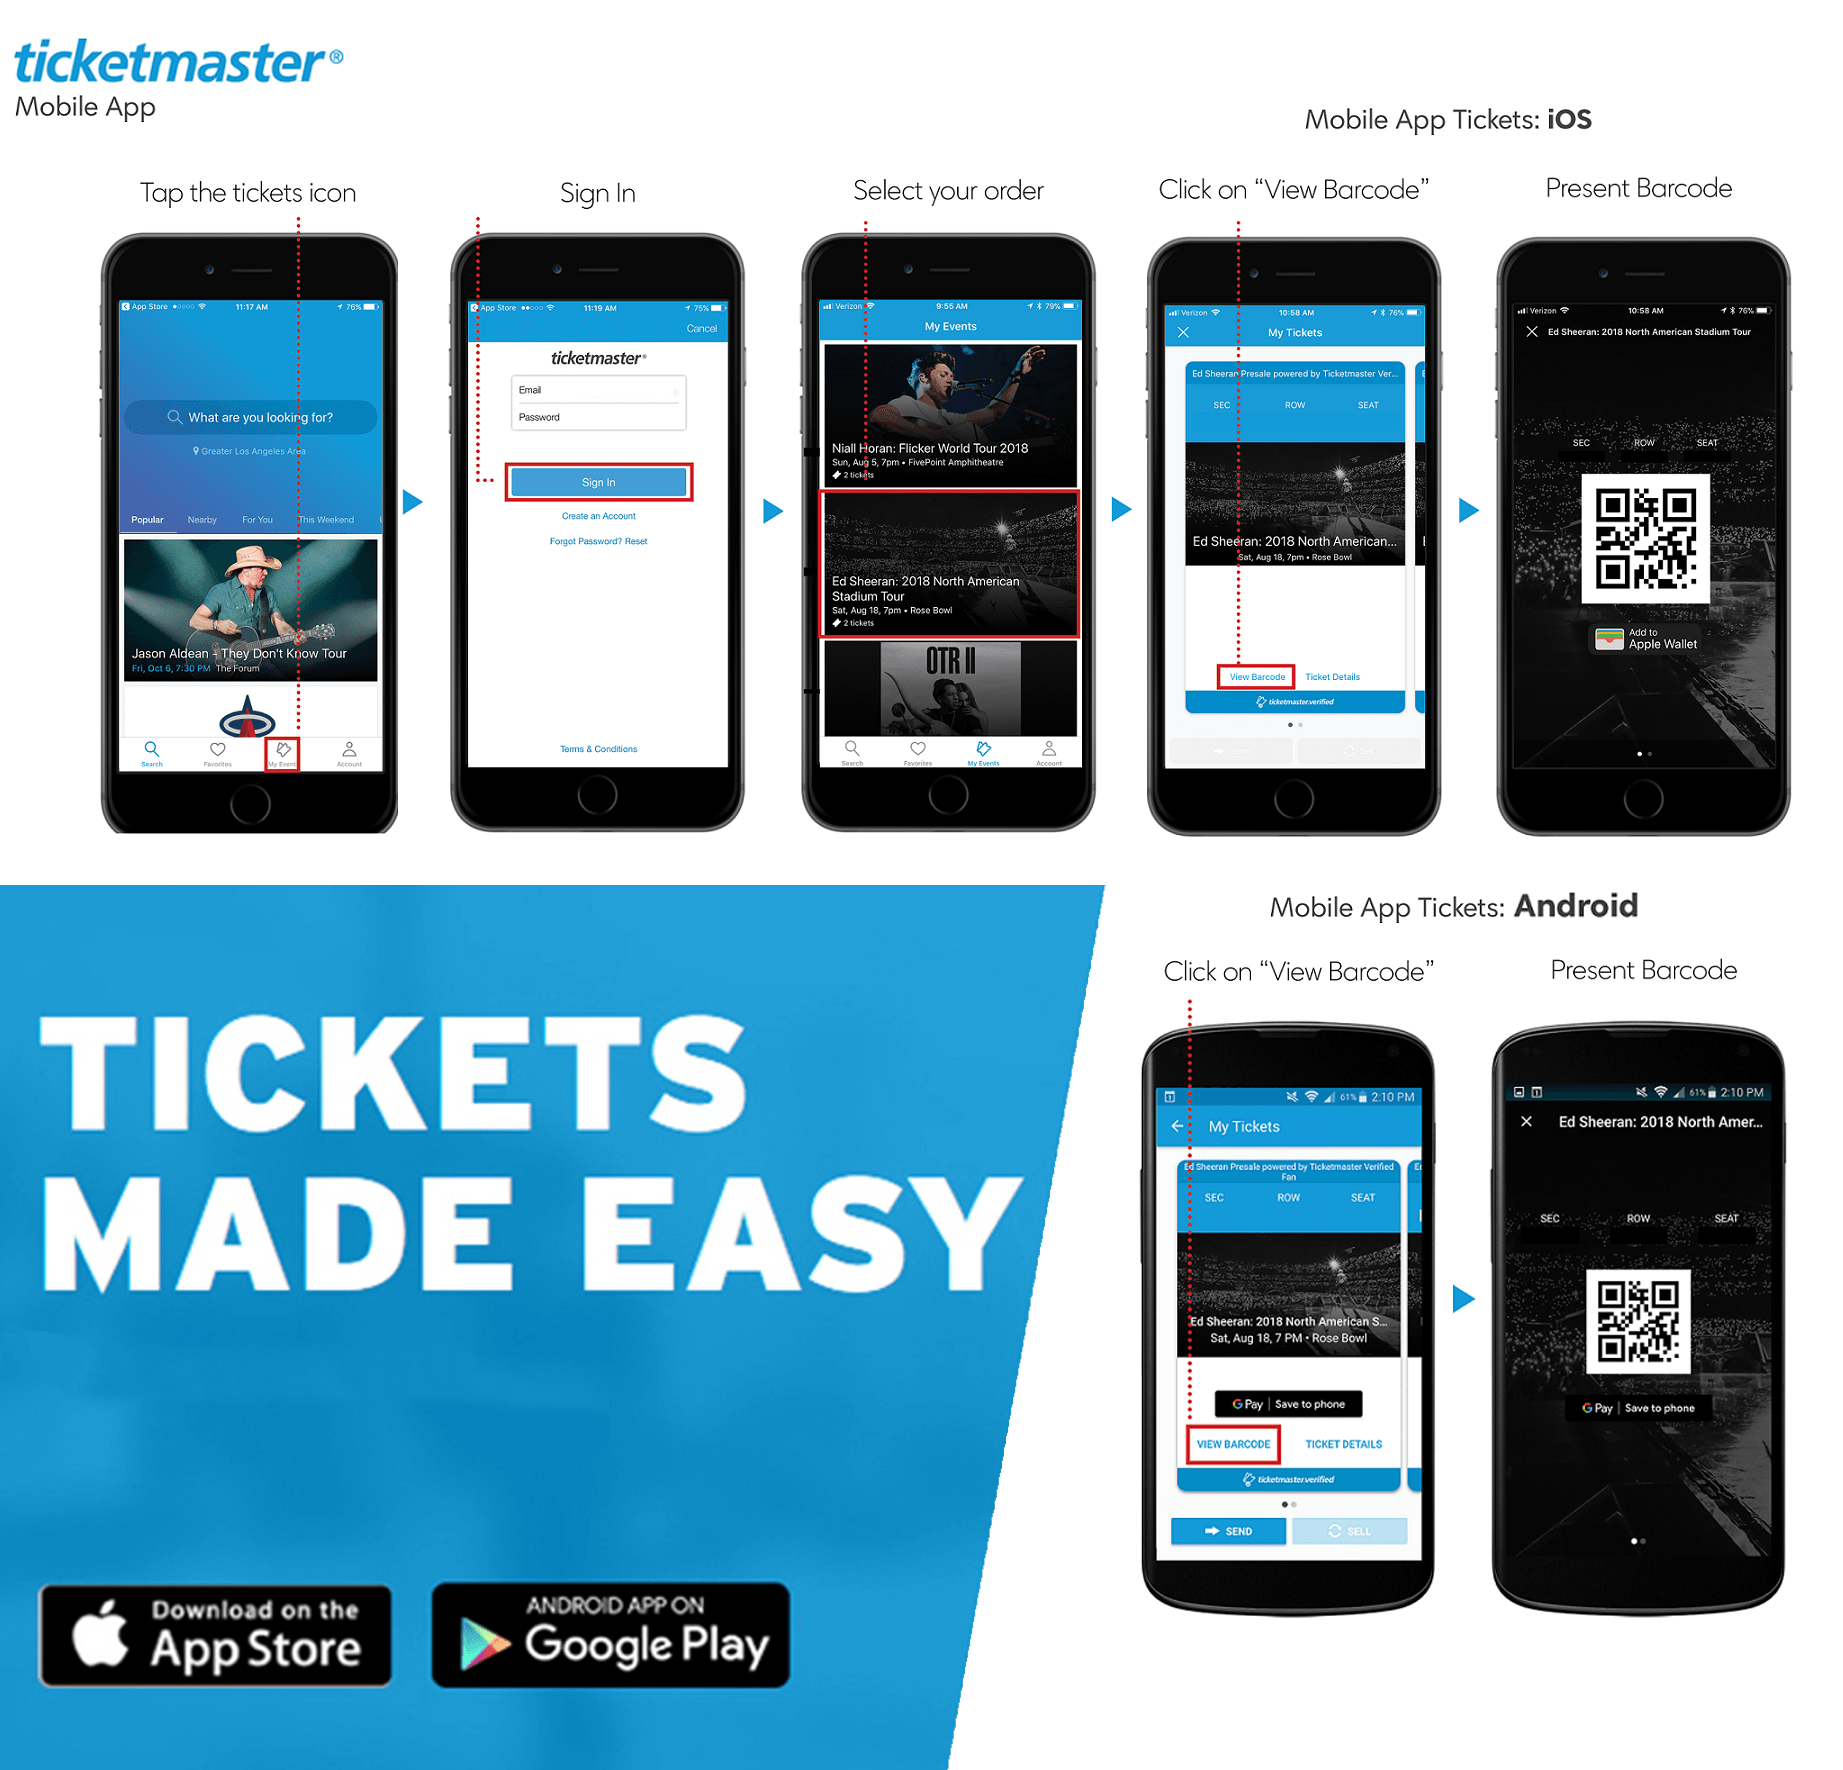 TM_ViewTickets-MobileApp.png